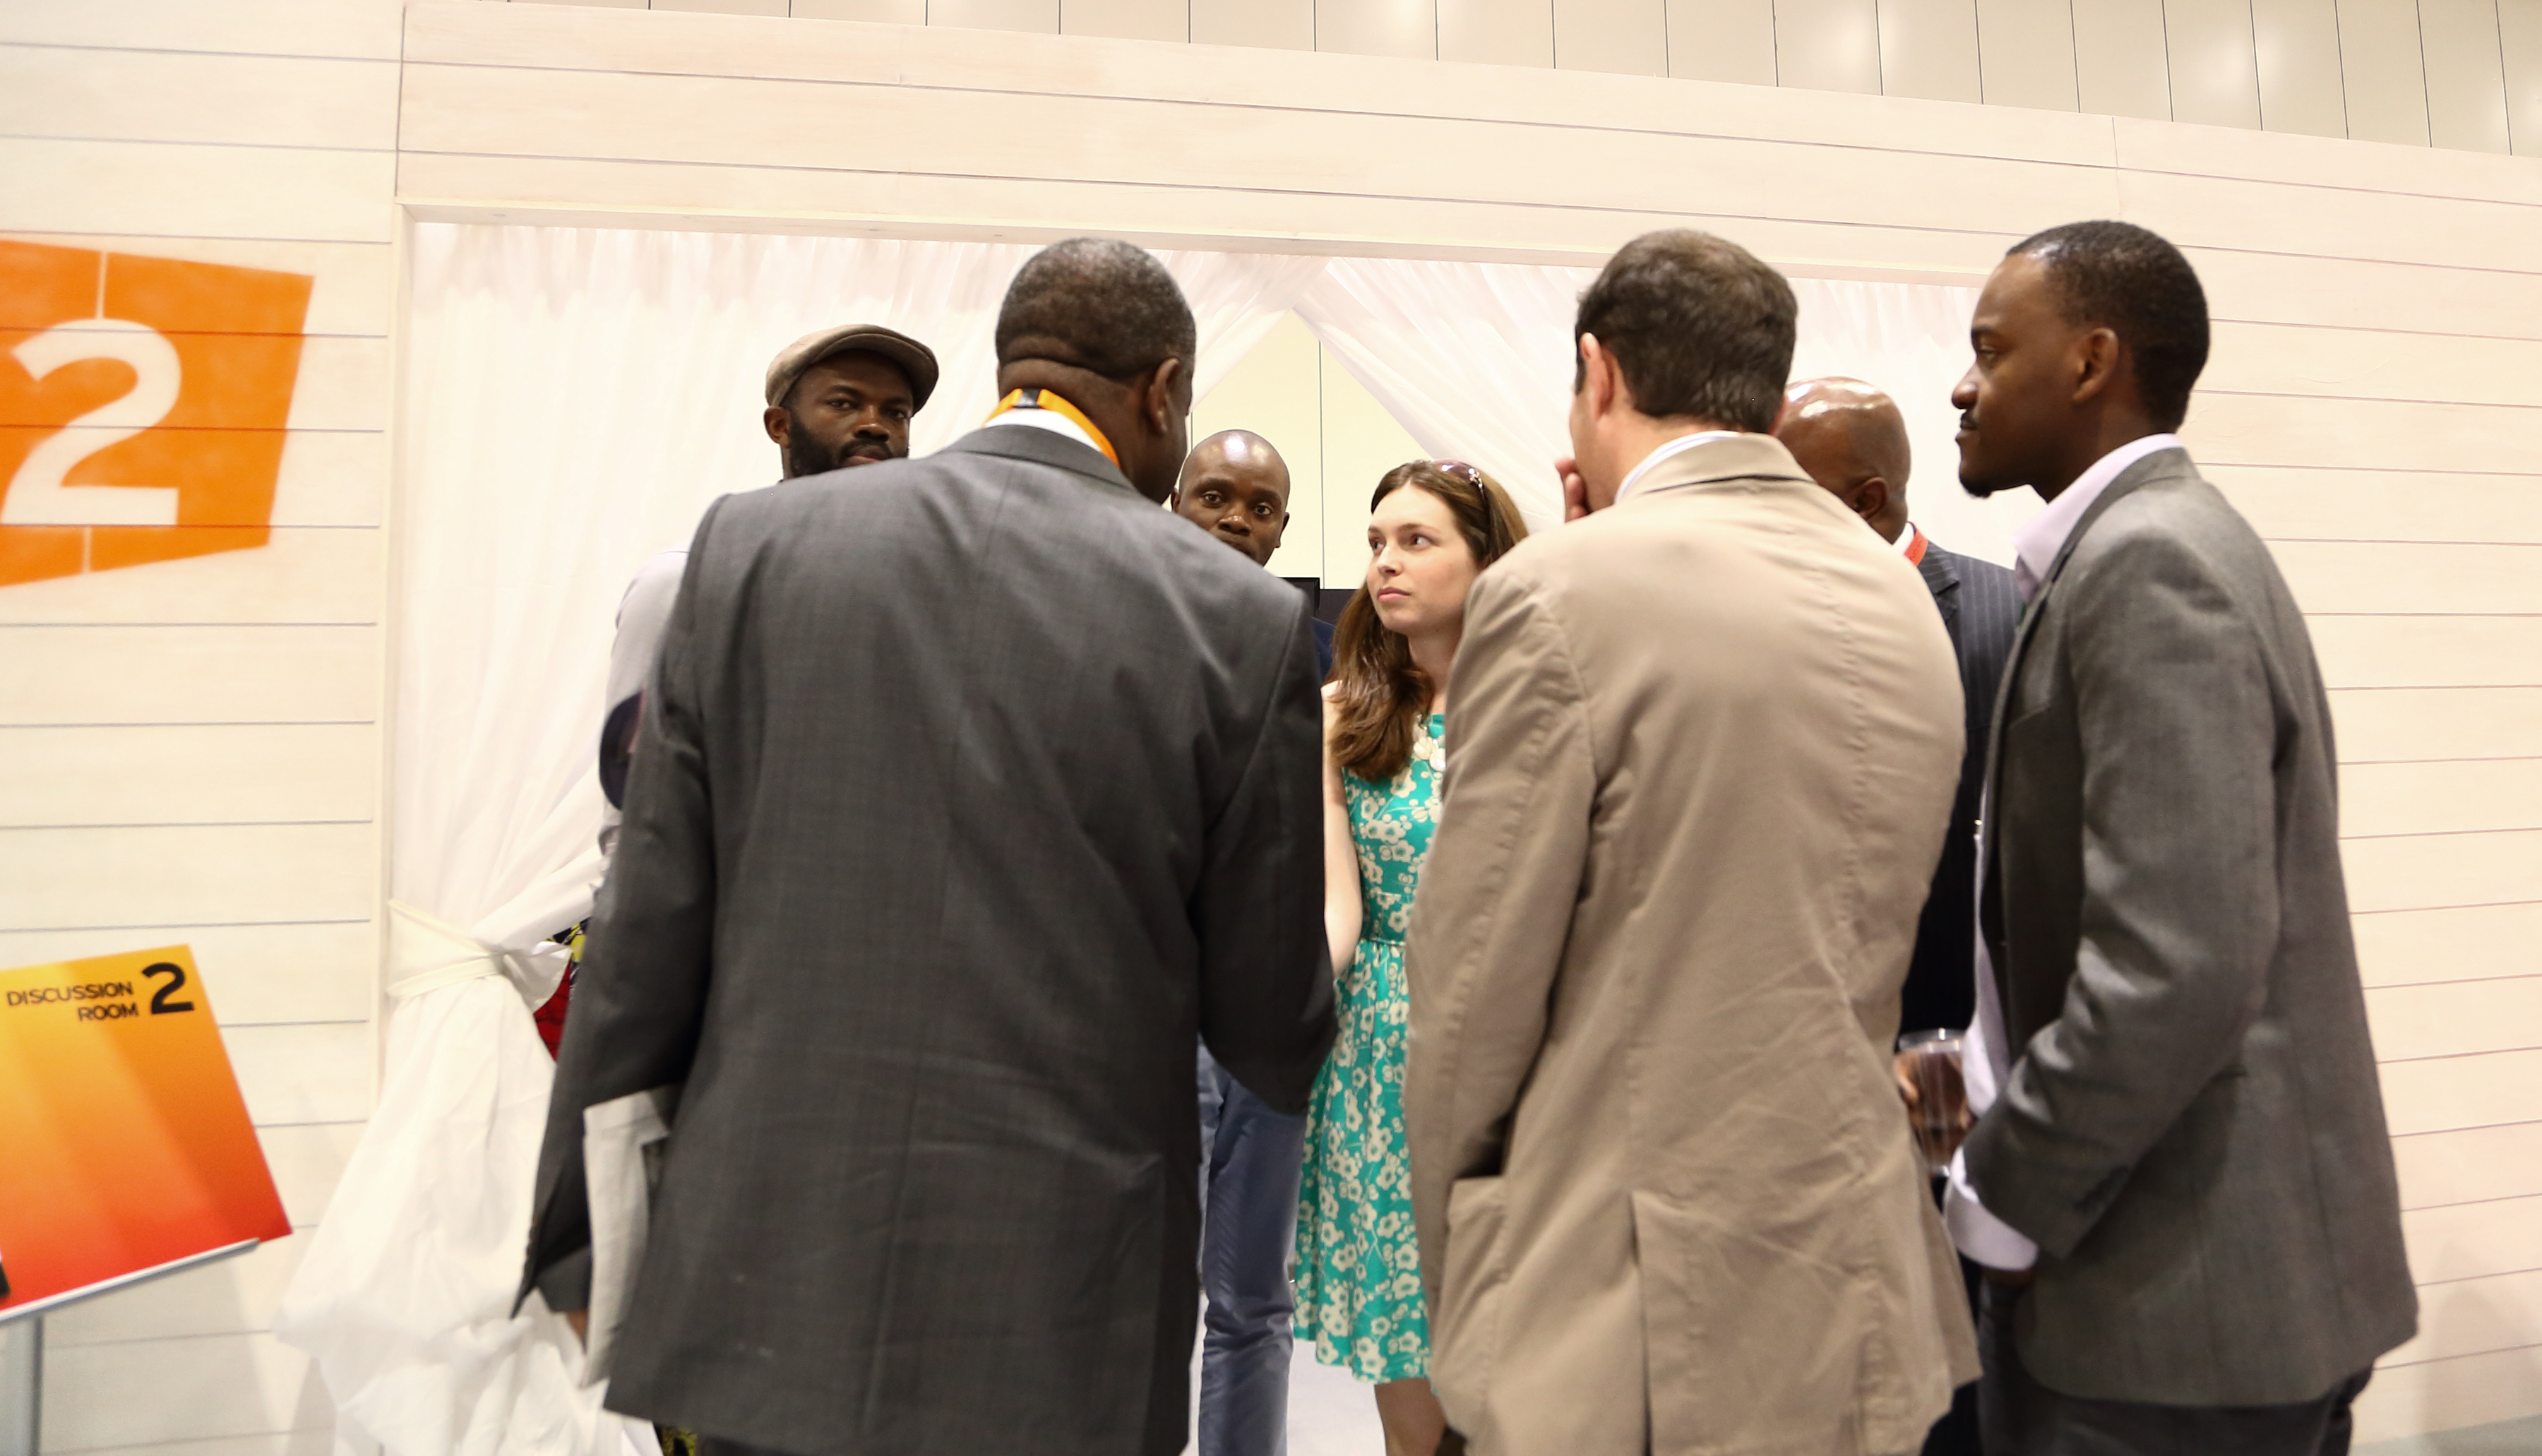 Nicole York of Congo Connect chatting to Dr. Denis Mukwege